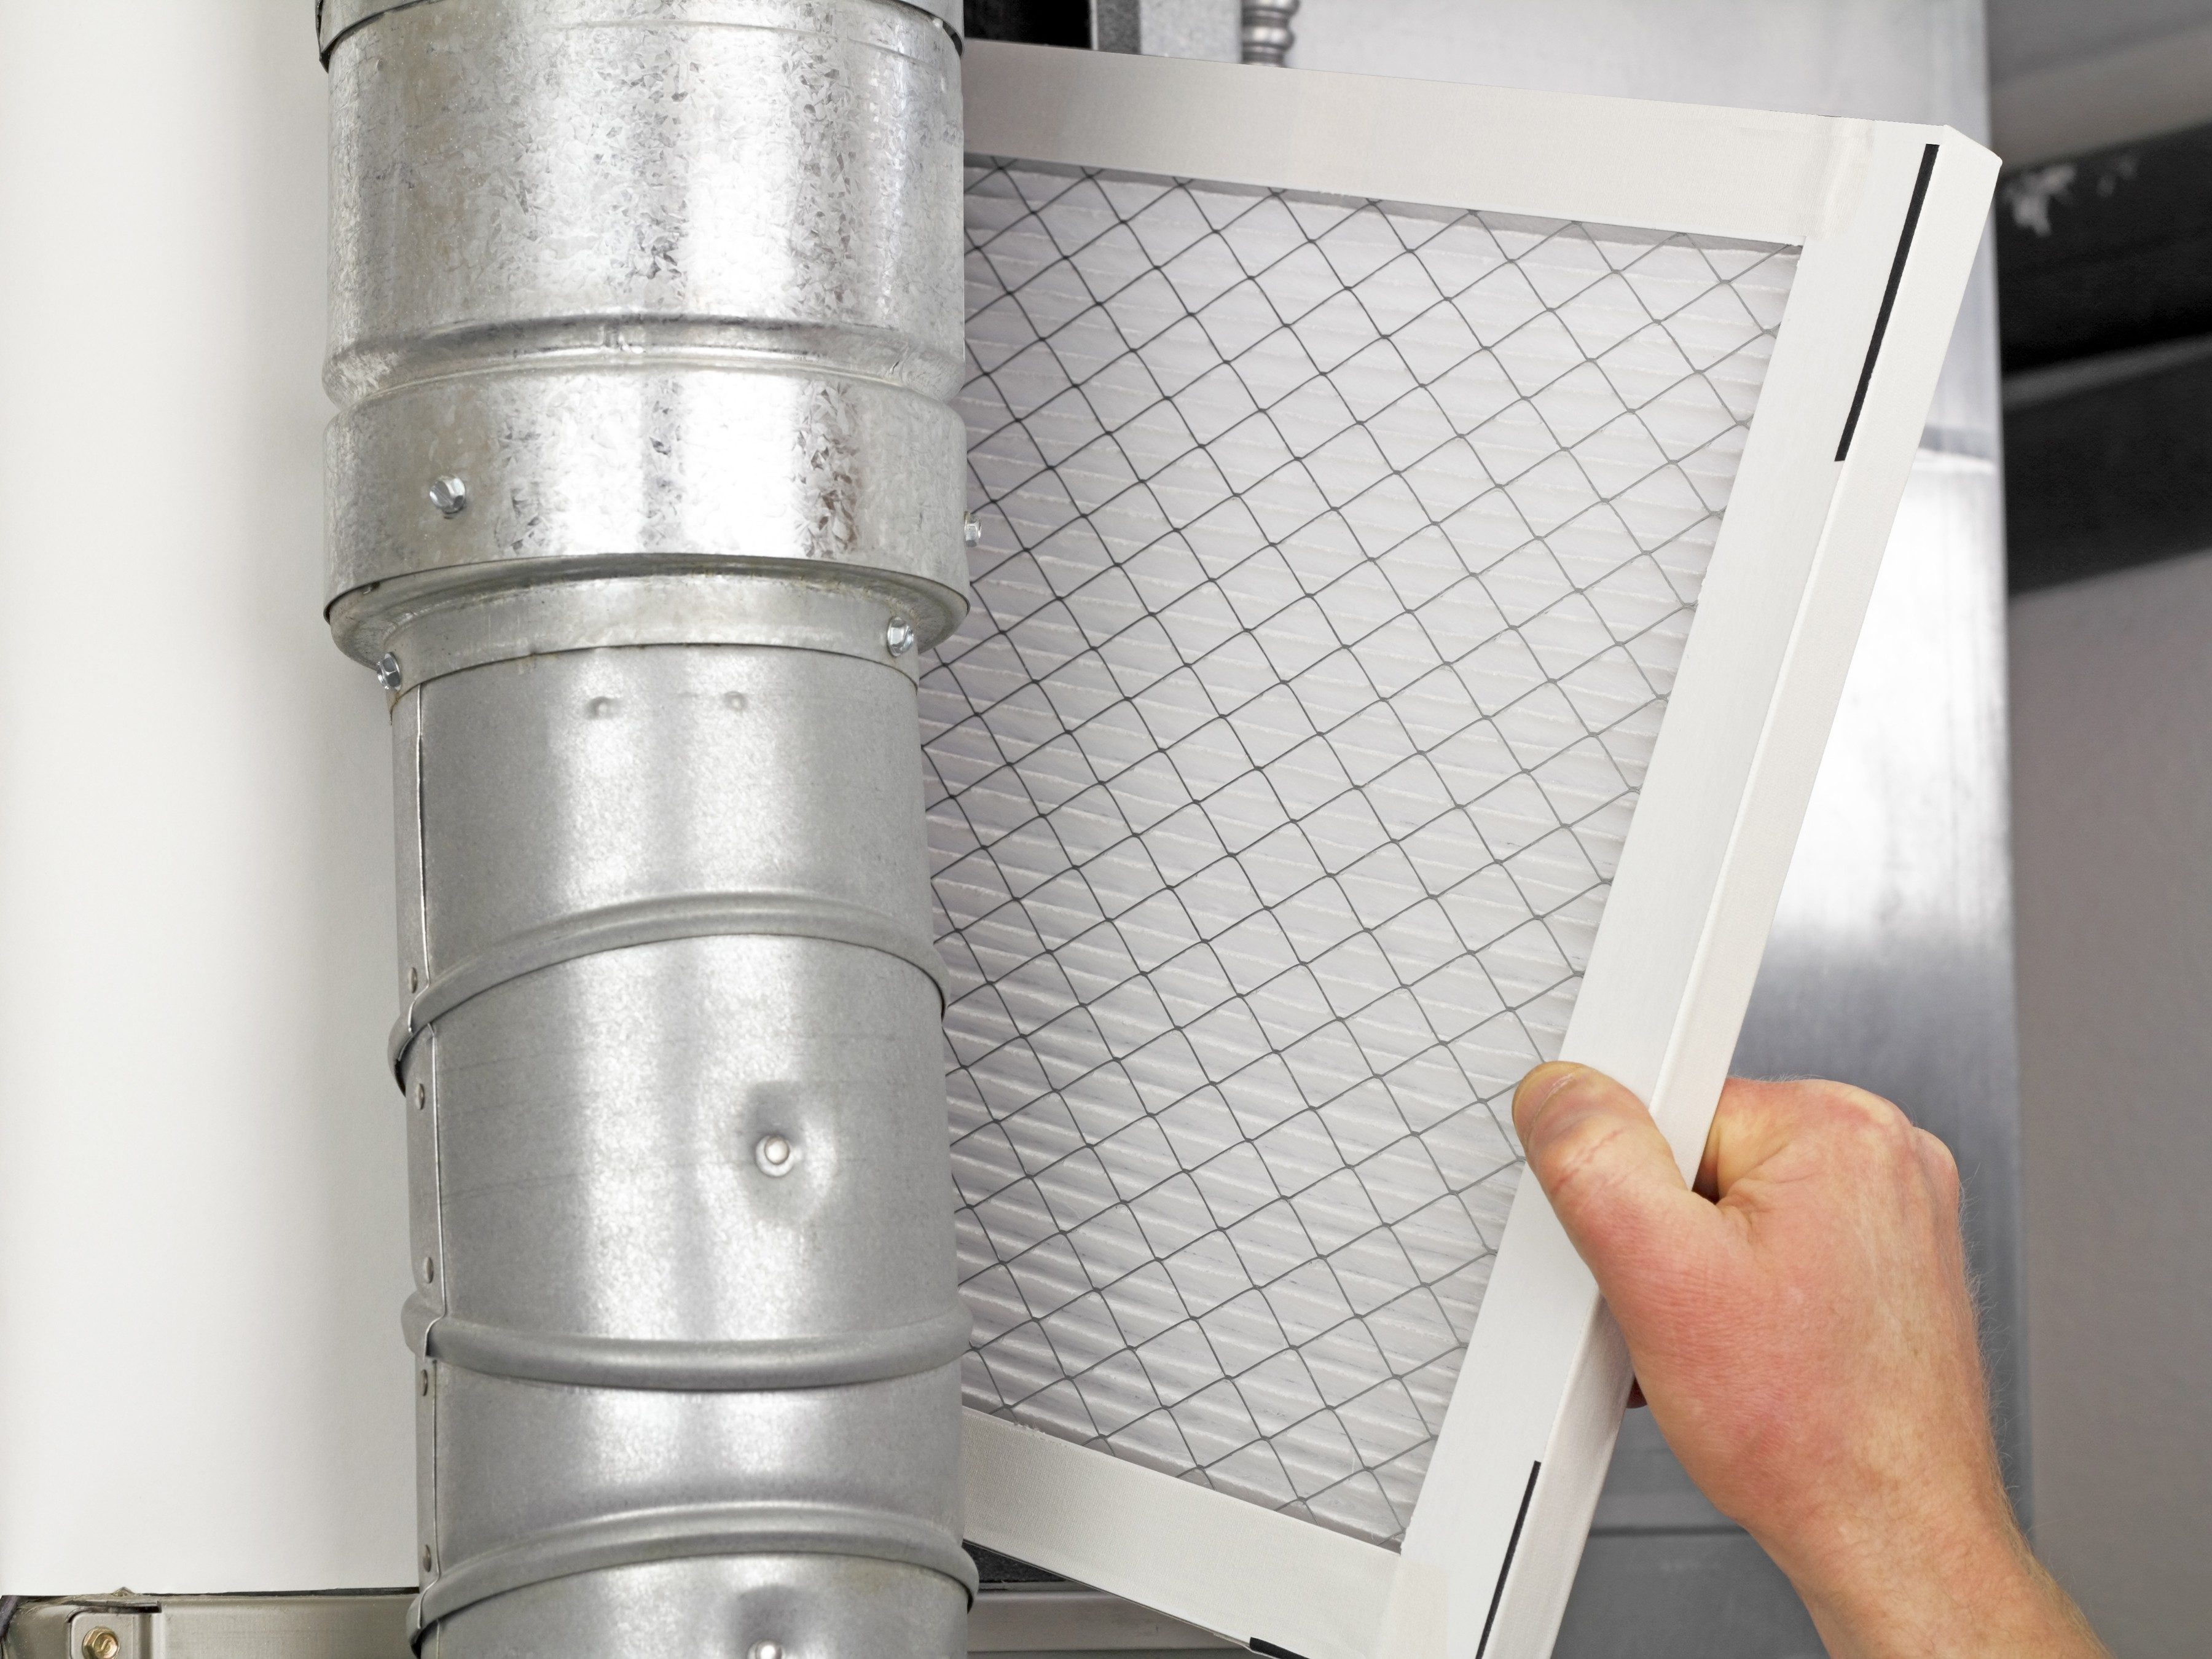 4. Replace furnace filters.